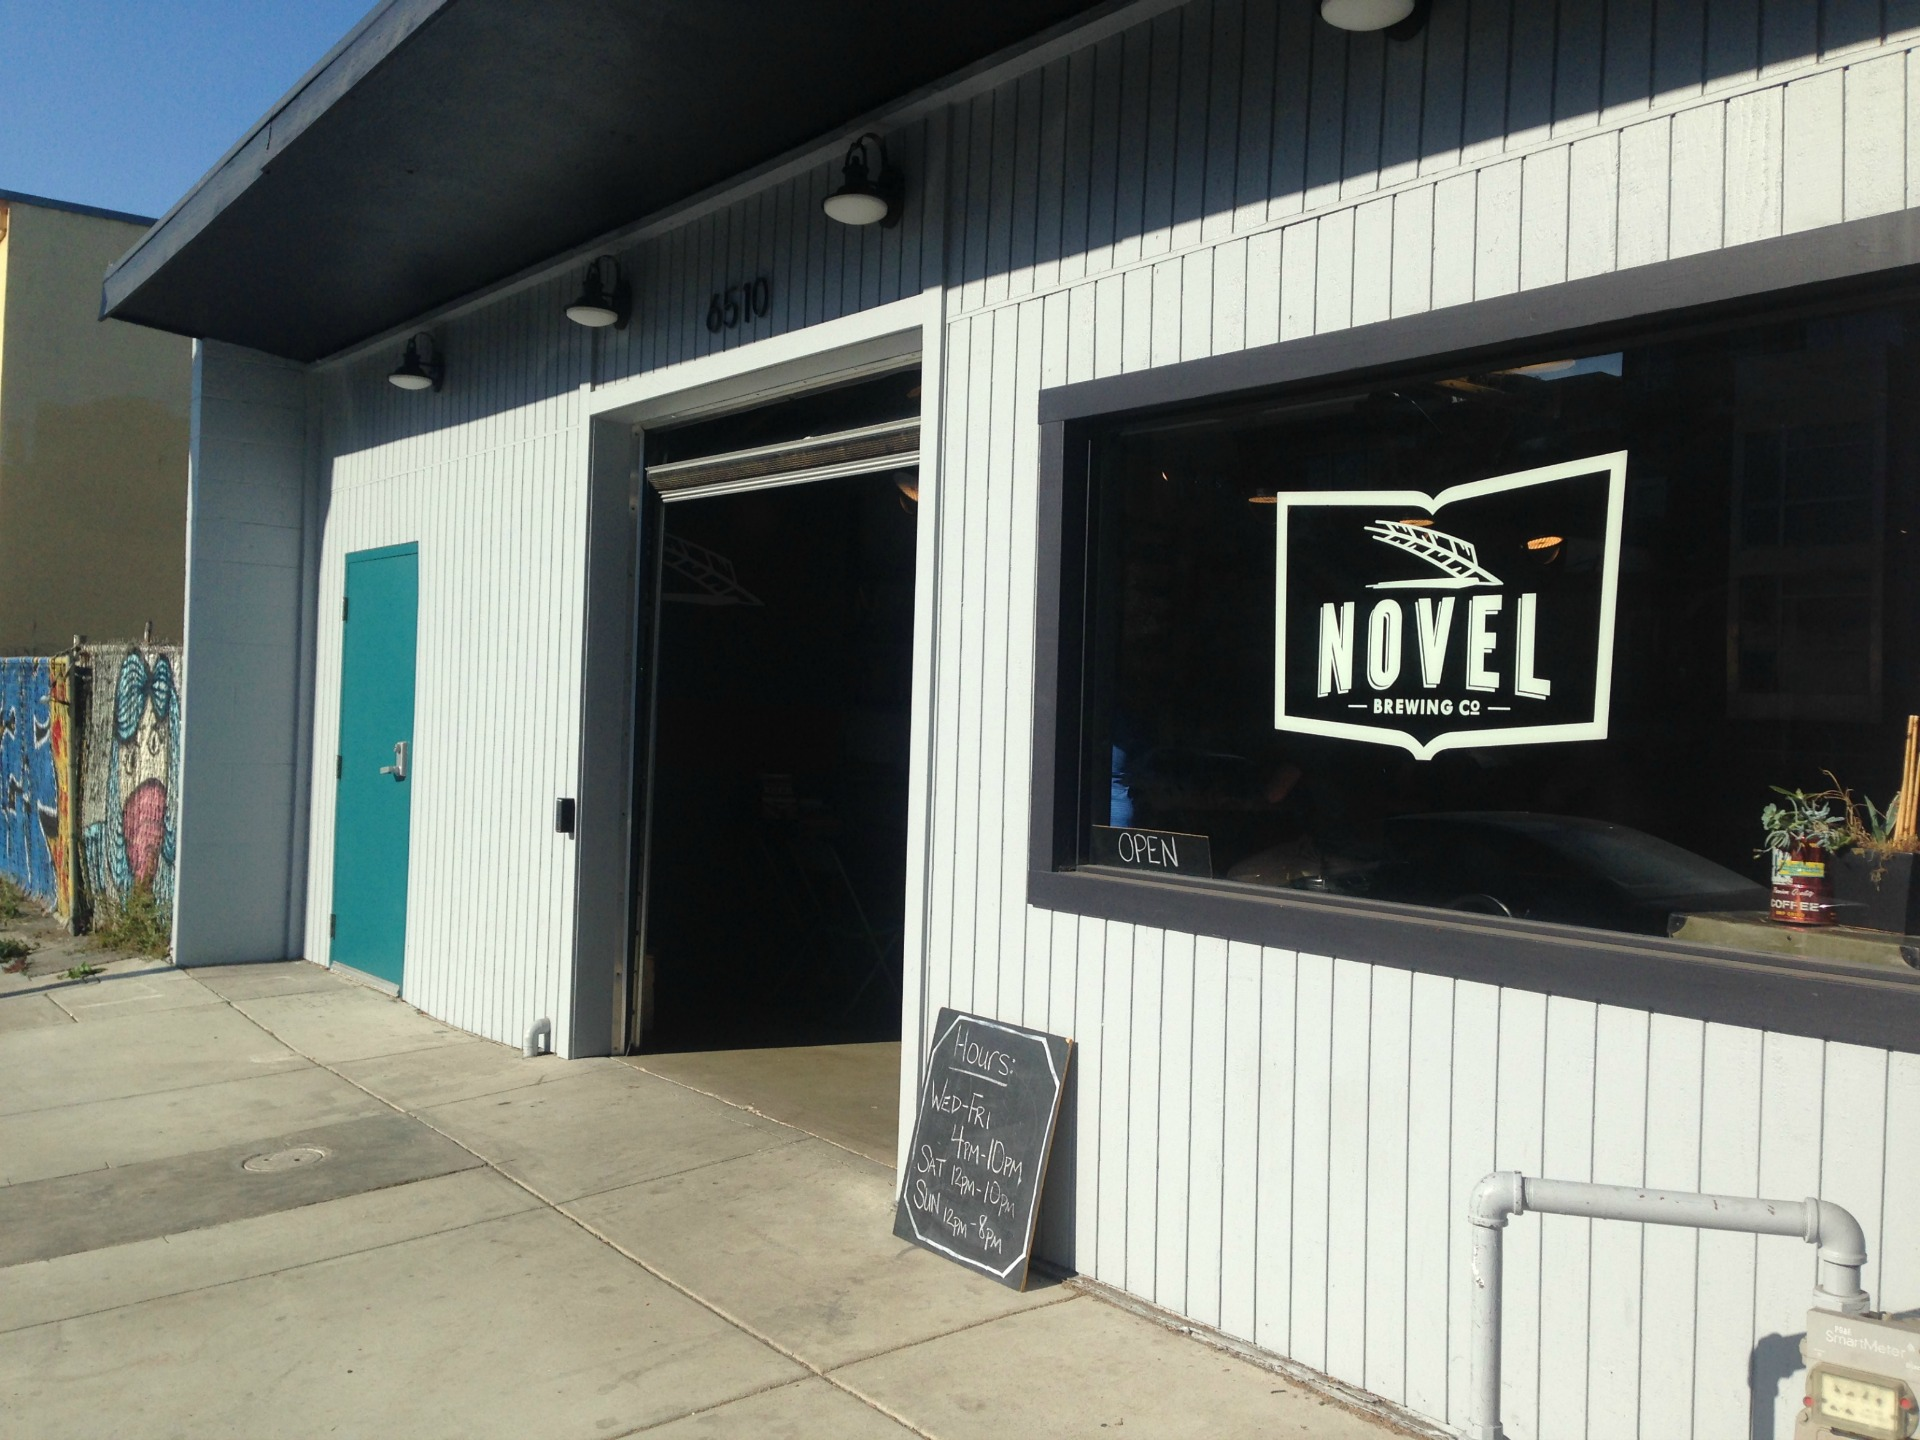 Novel Brewing is located in Oakland's Golden Gate neighborhood.